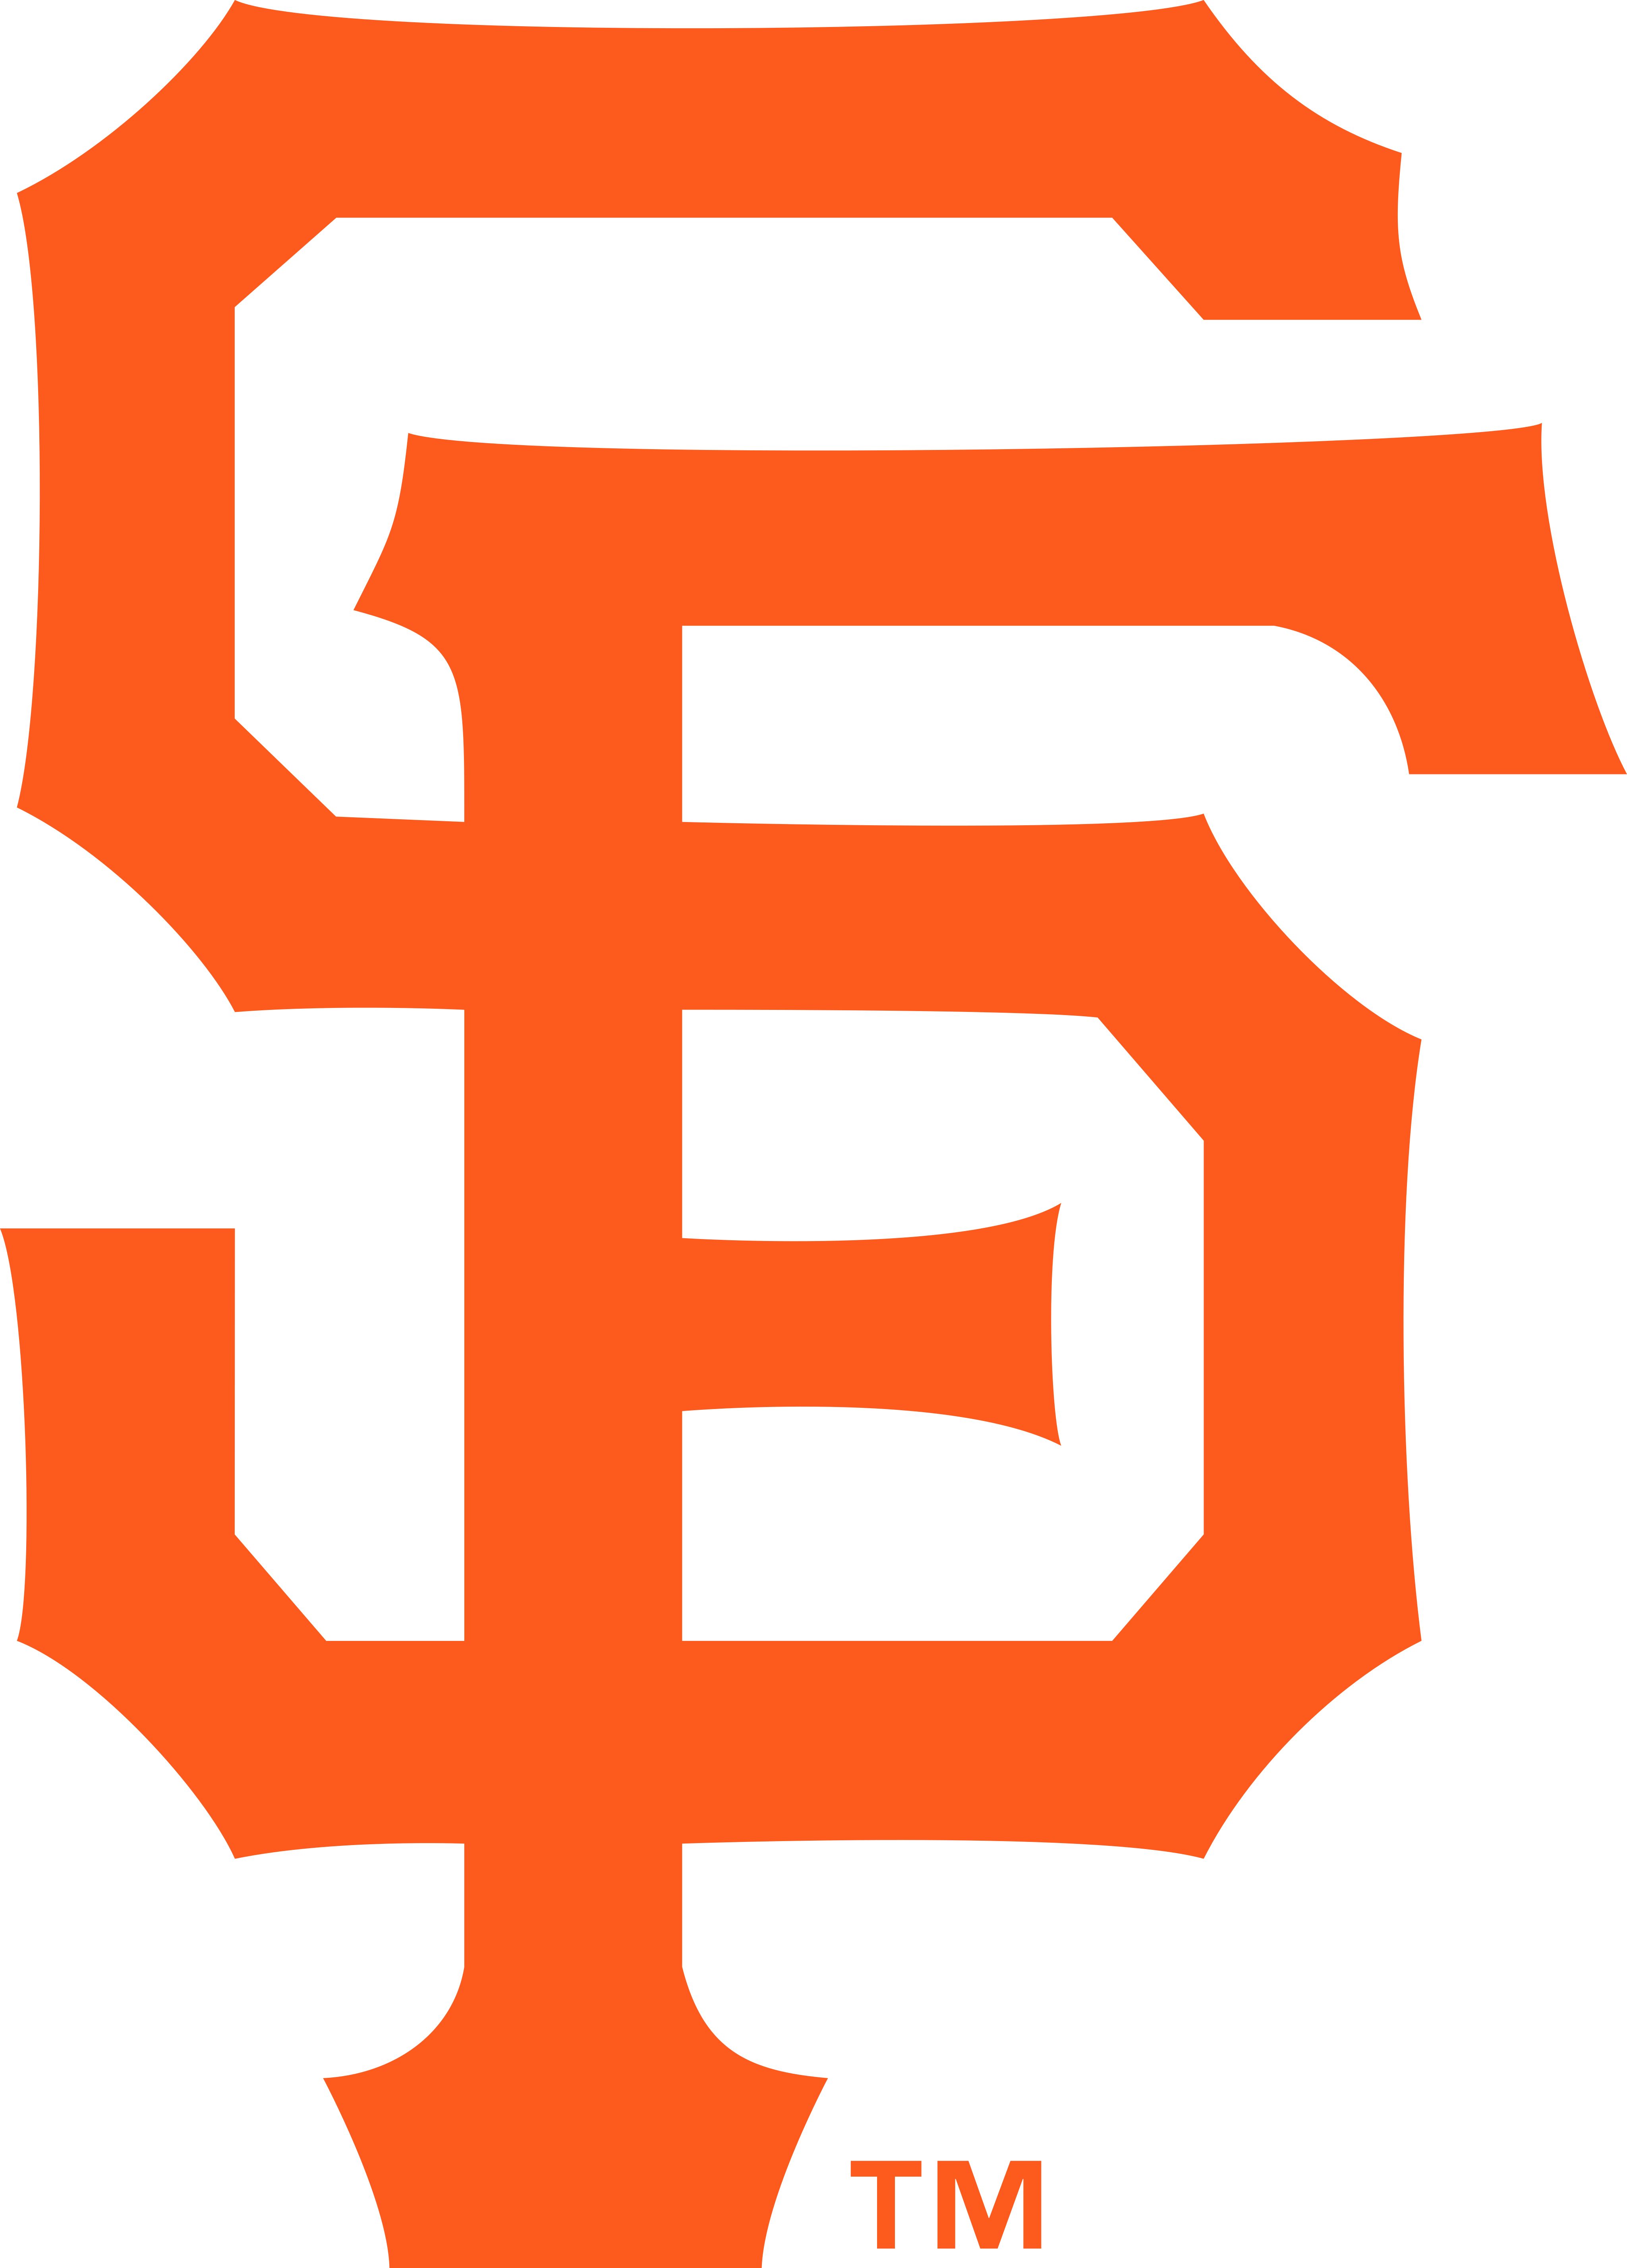 san francisco giants logo - San Francisco Giants Logo